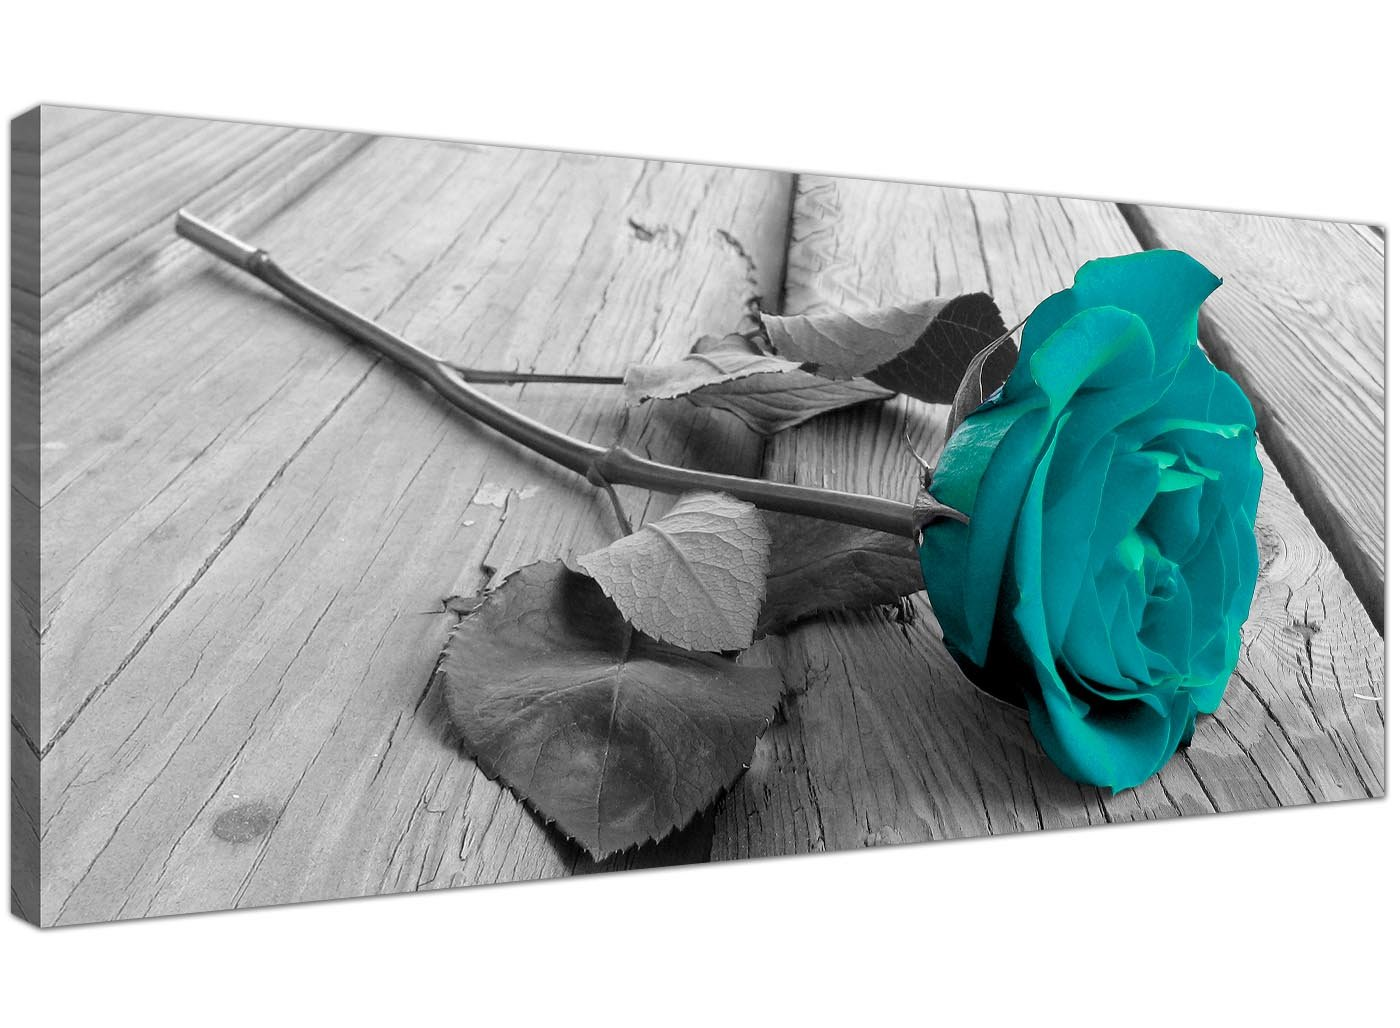 Marvelous Wallfillers Modern Black And White Canvas Wall Art Of A Teal Rose Flower    Large Floral Canvas Pictures   1037: Amazon.co.uk: Kitchen U0026 Home